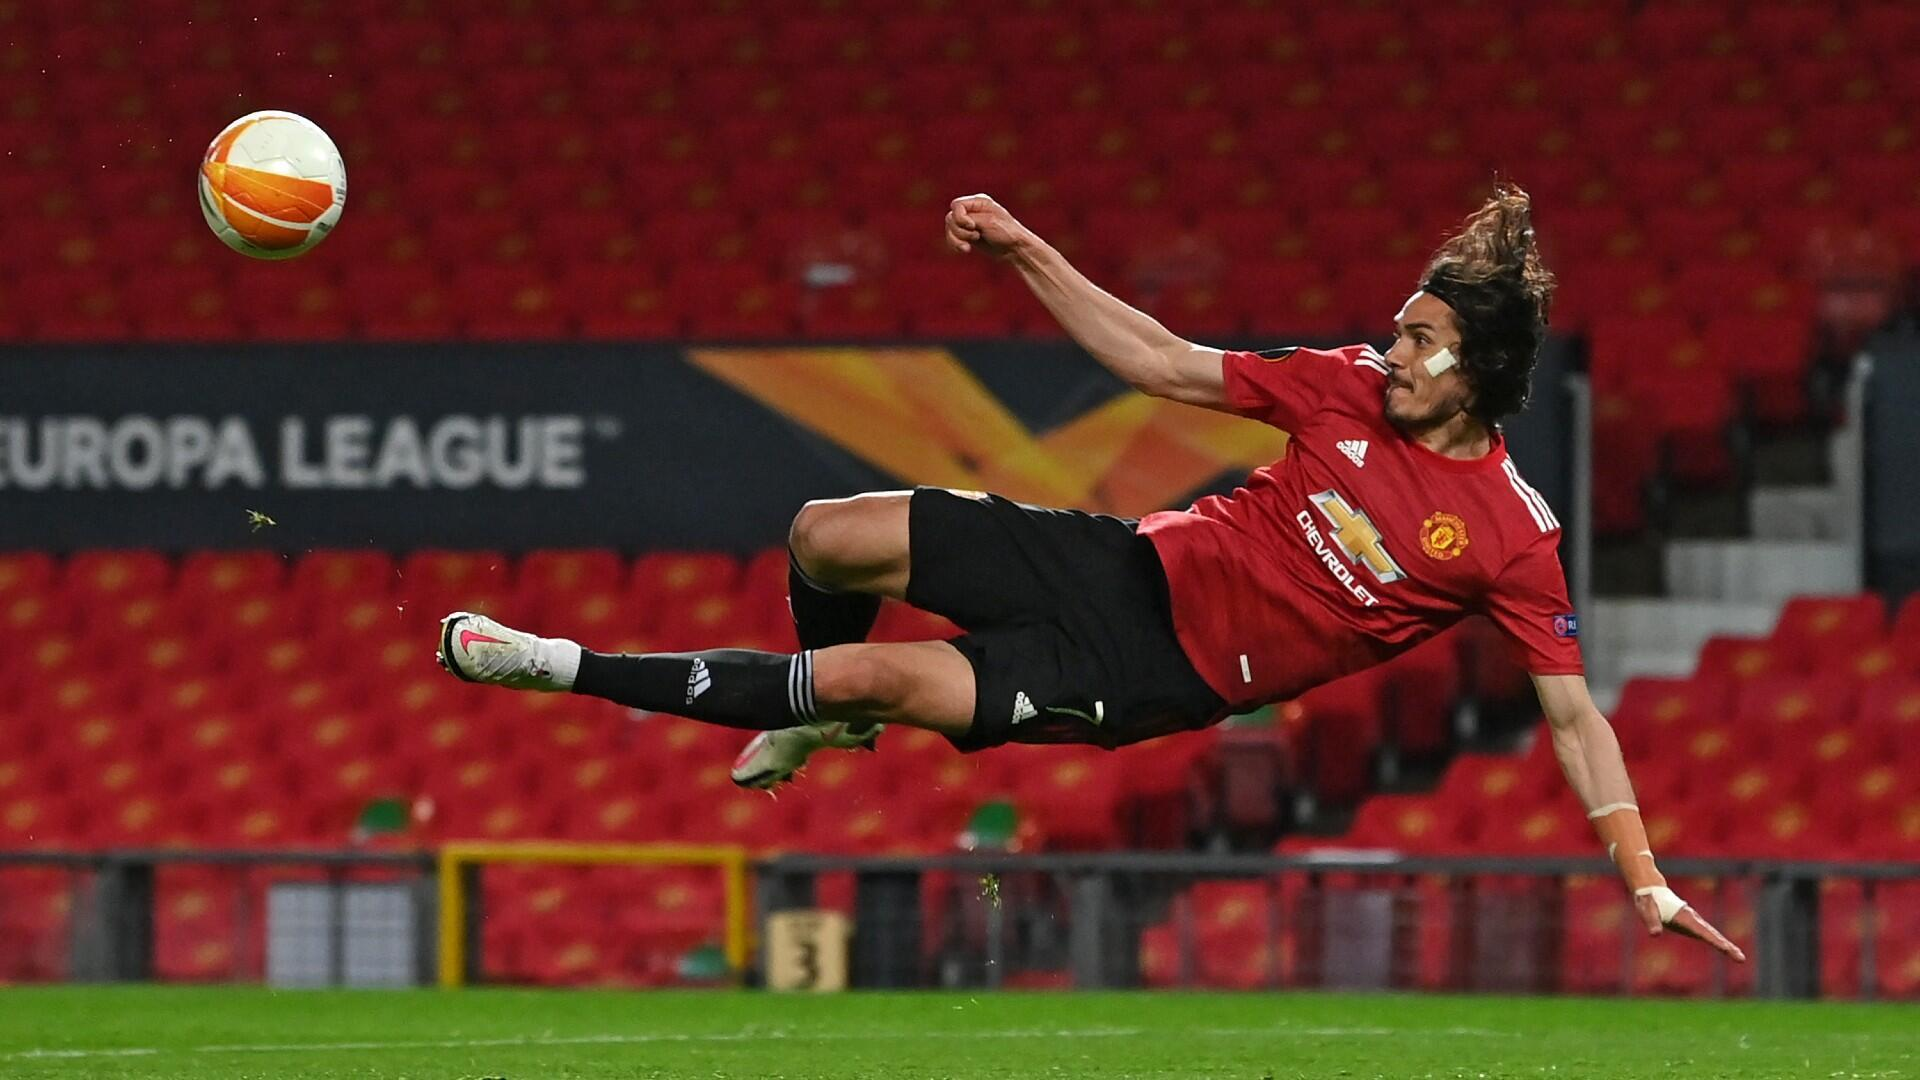 football ligue europa manchester united as roma